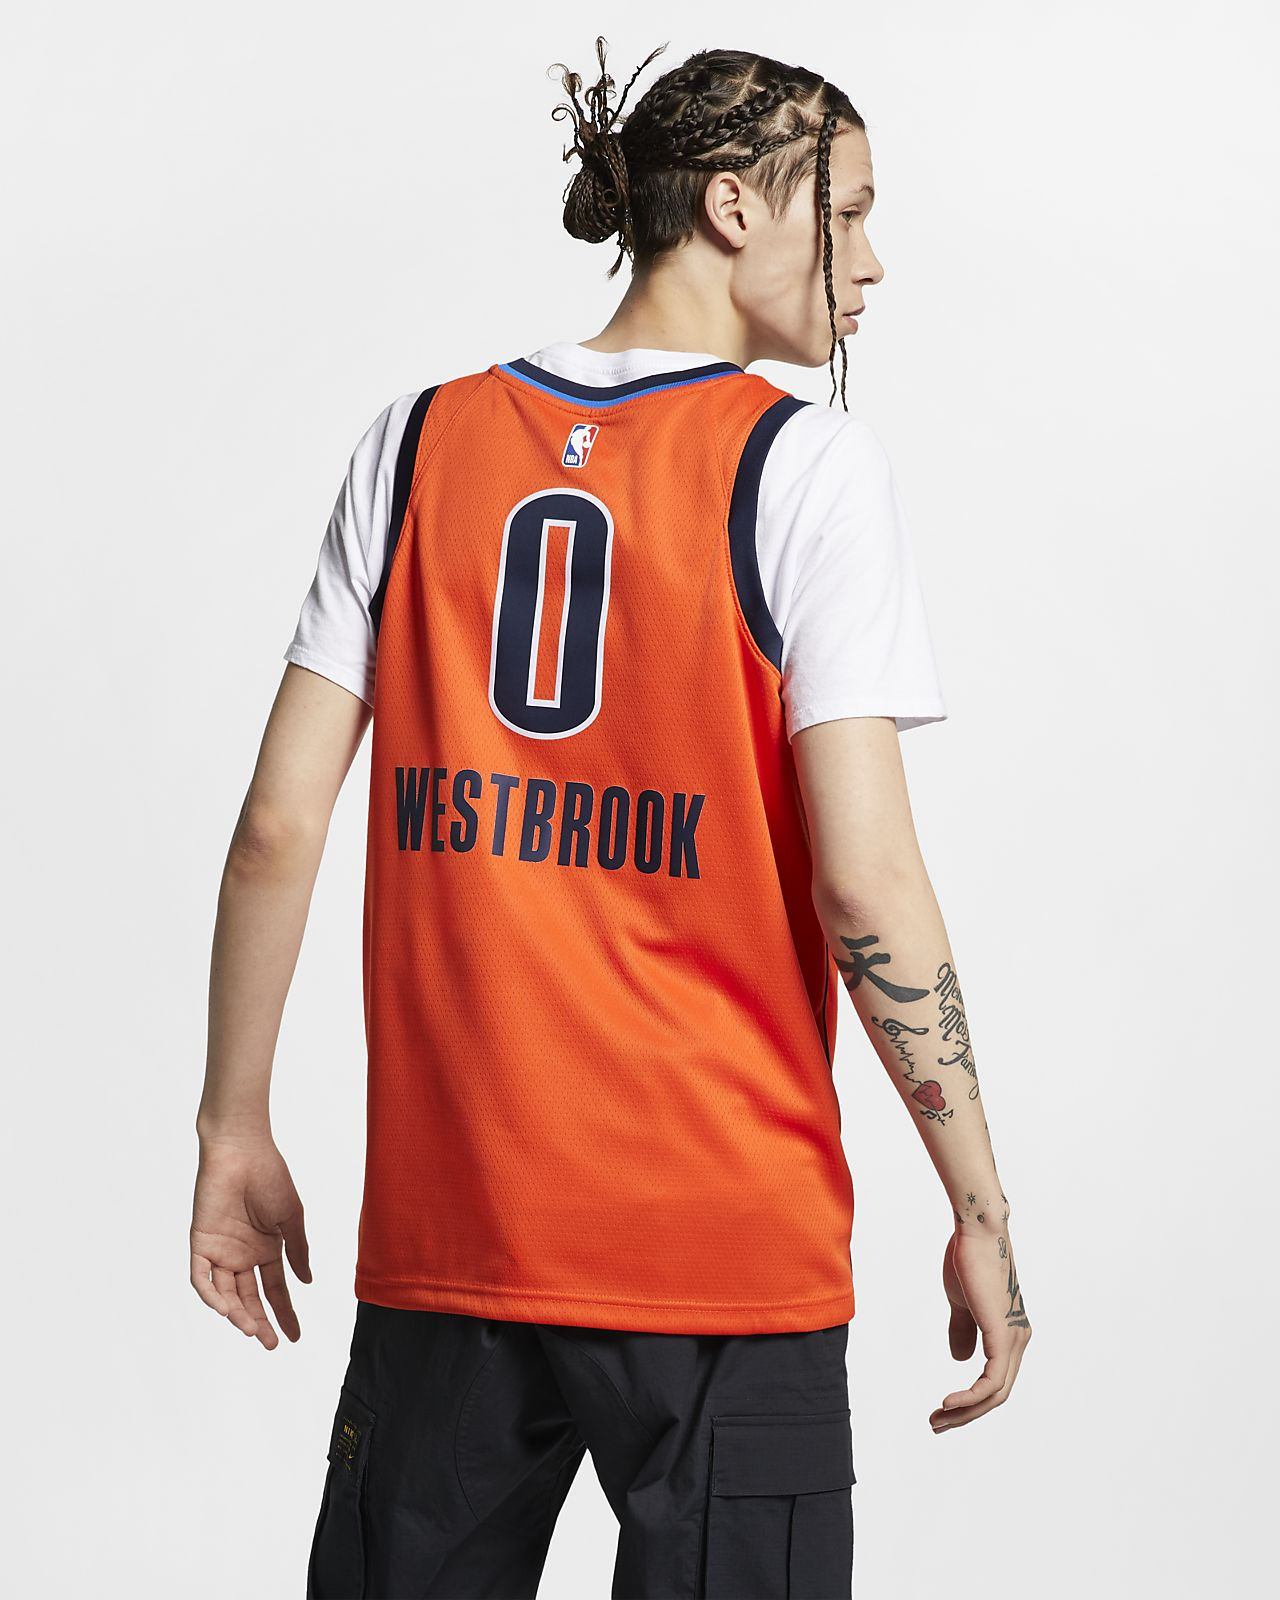 new styles 7139f d39eb Russell Westbrook Earned City Edition Swingman (Oklahoma City Thunder)  Men's Nike NBA Connected Jersey